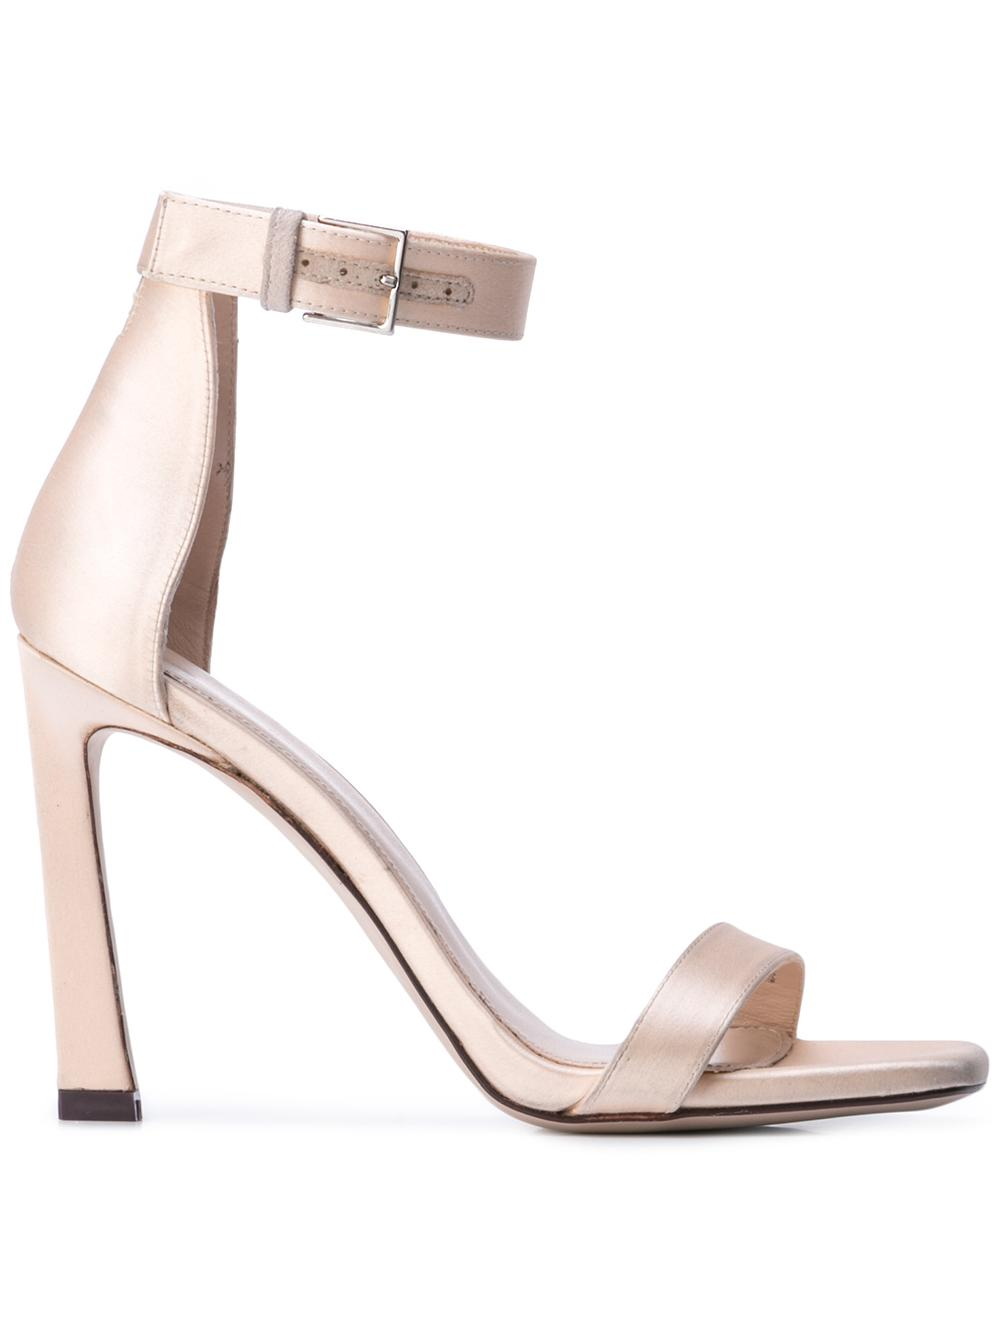 Satin Square Toe High Heel Ankle Strap Sandal Item # 100SQUARENUDIST